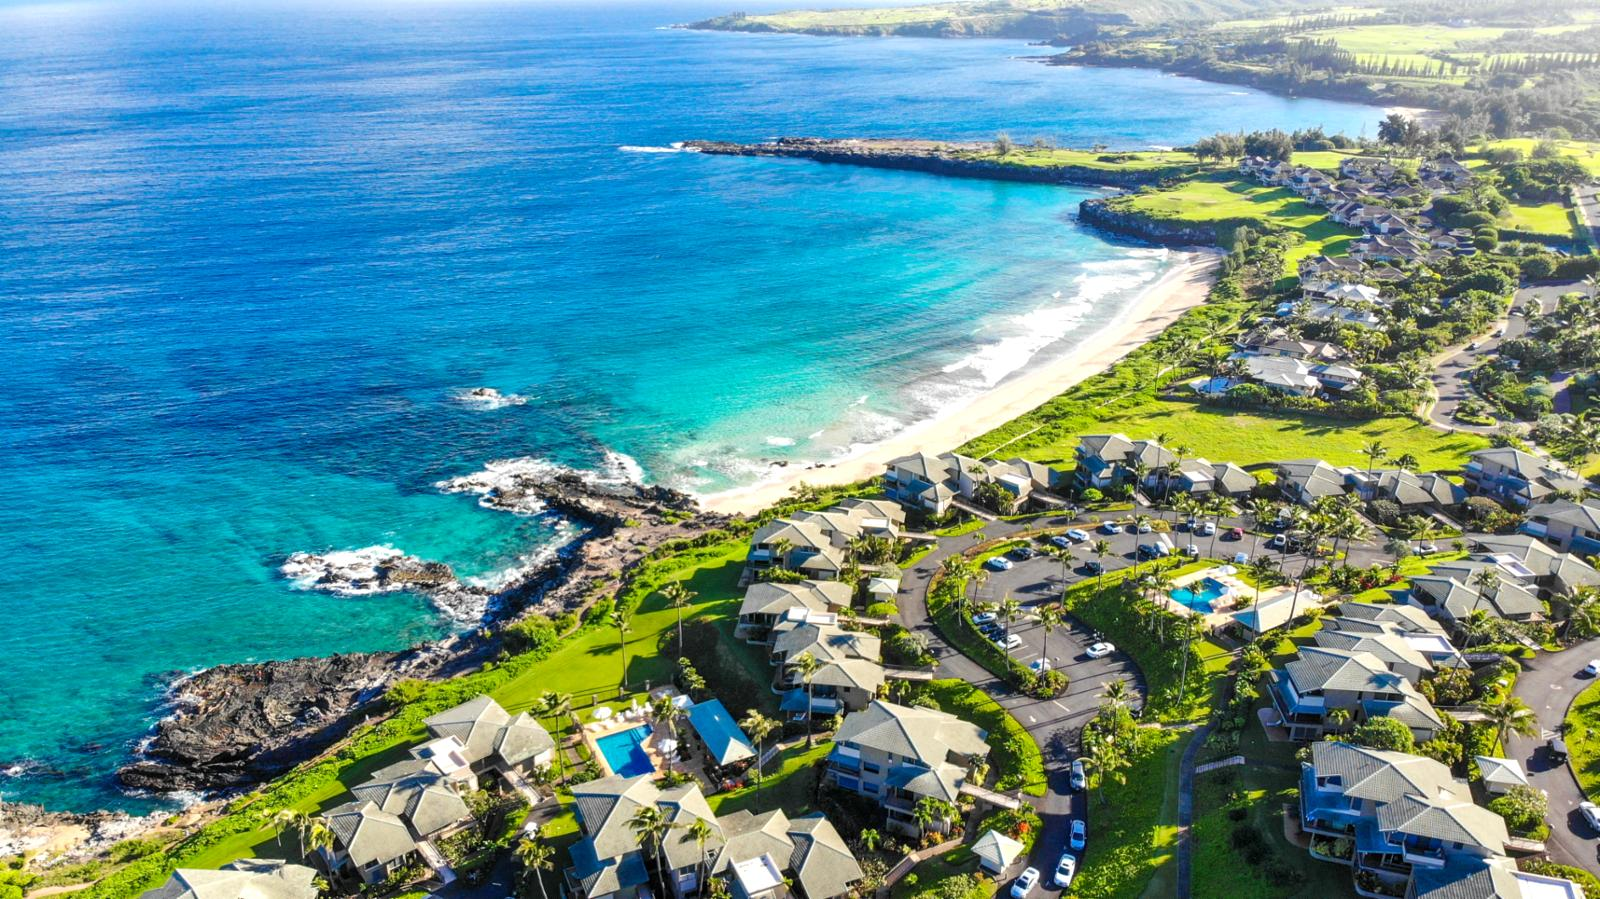 Welcome to the world famous Kapalua Bay Villas!